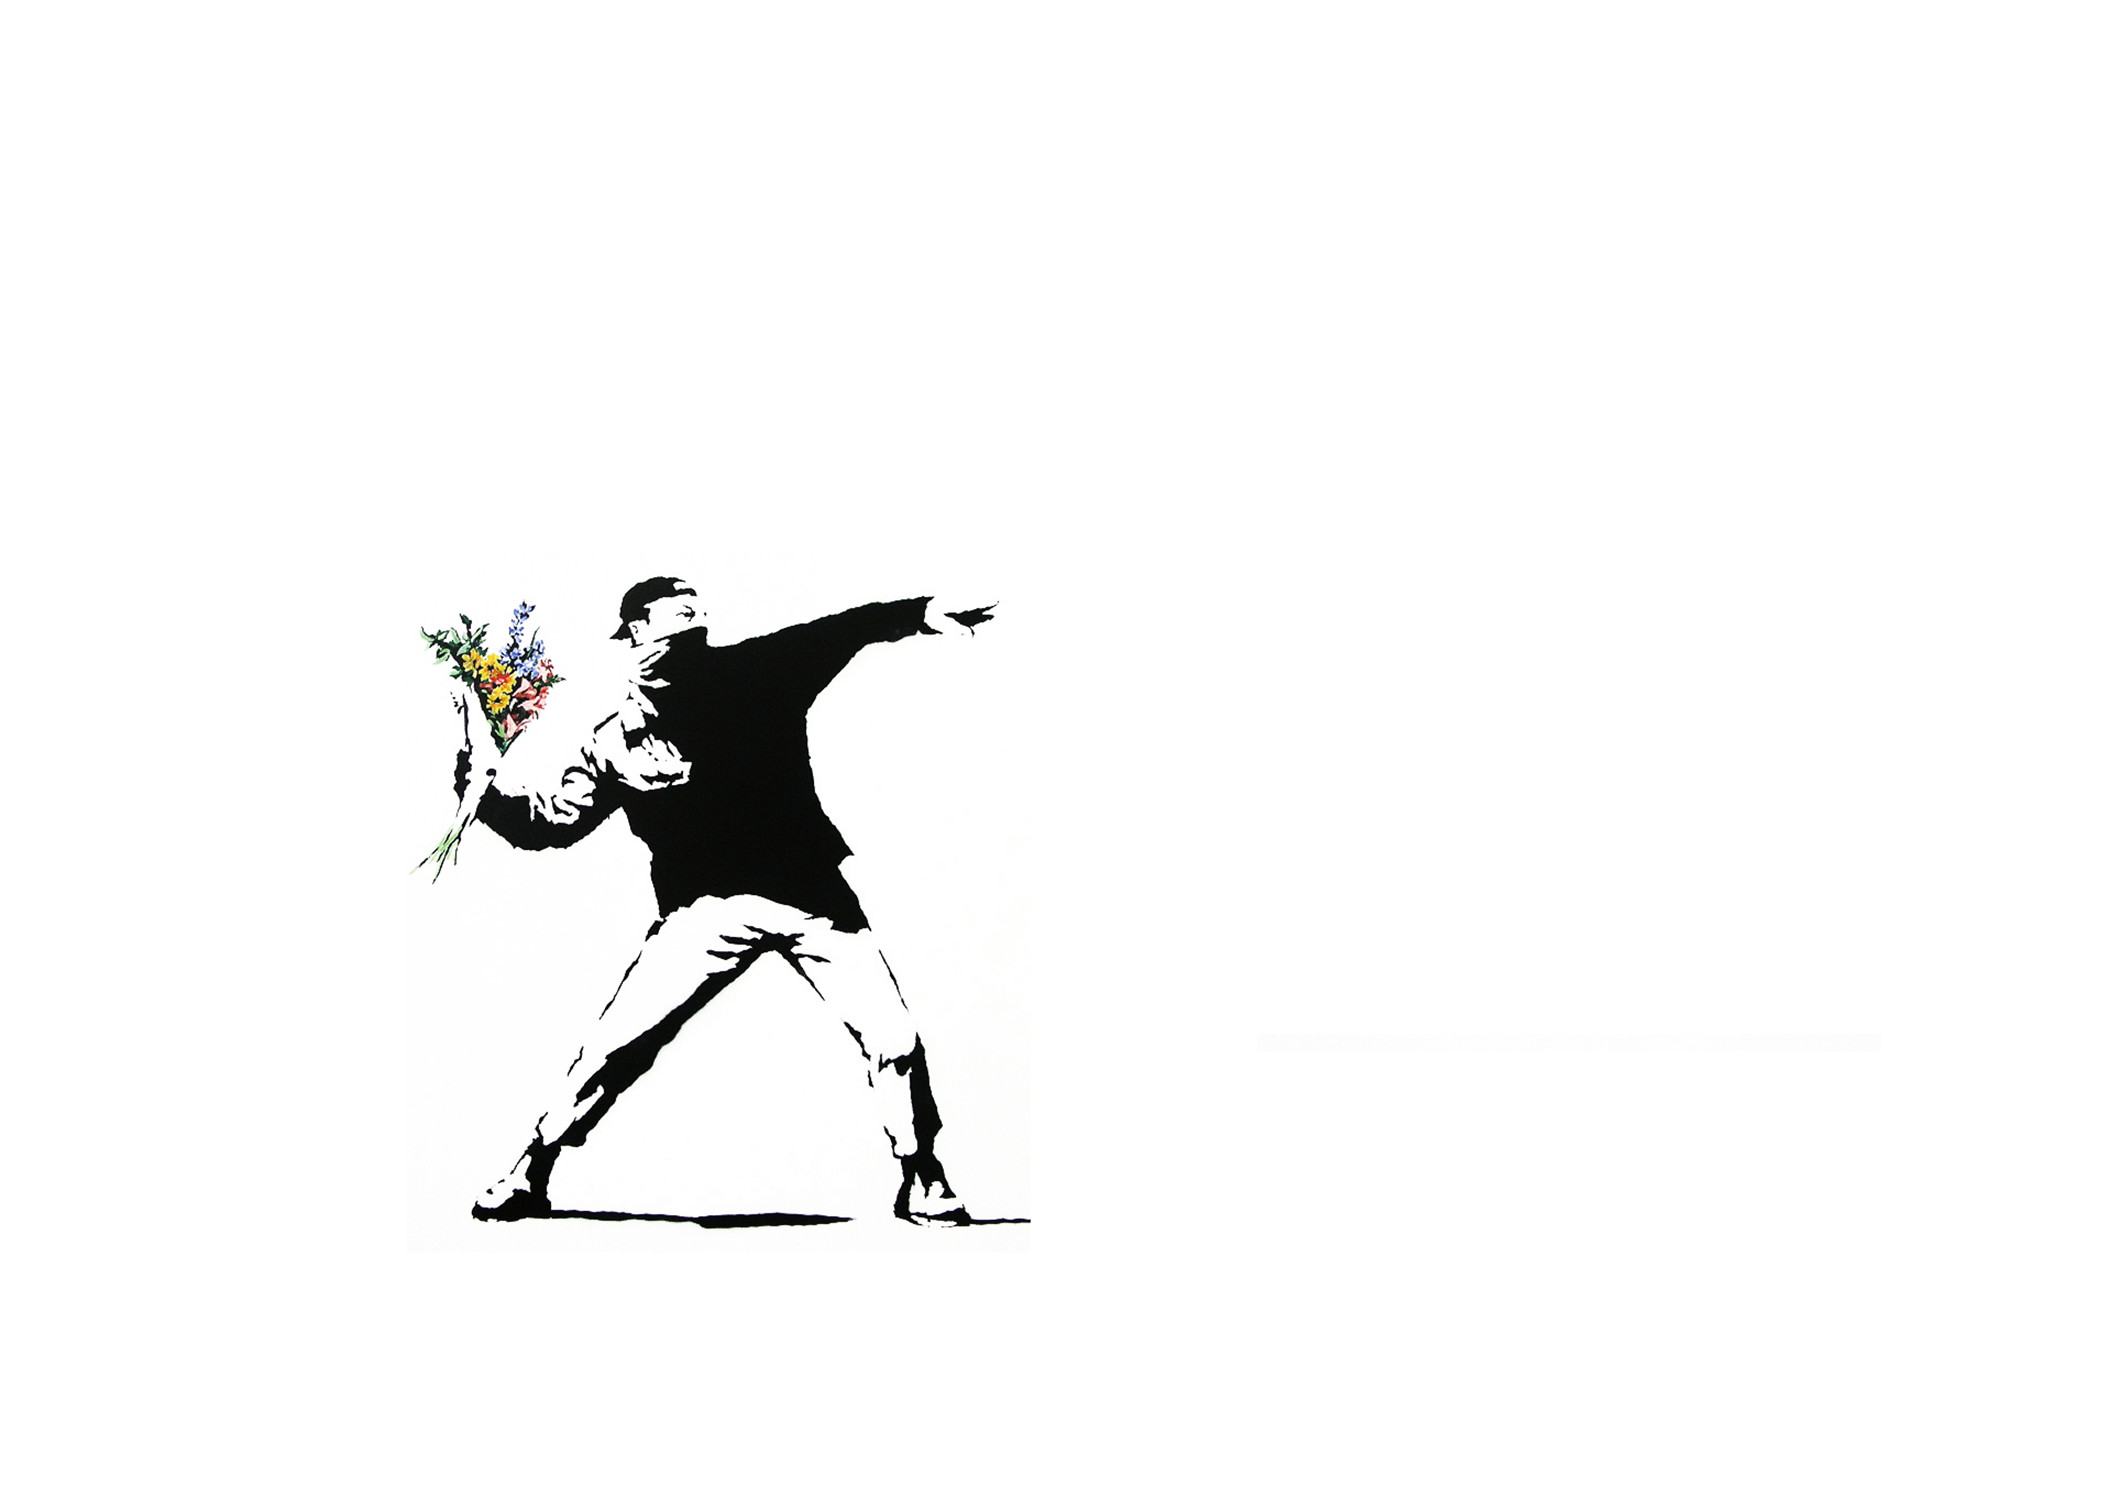 … Banksy backgrounds Follow Your Dreams Load 32 more images Grid view …